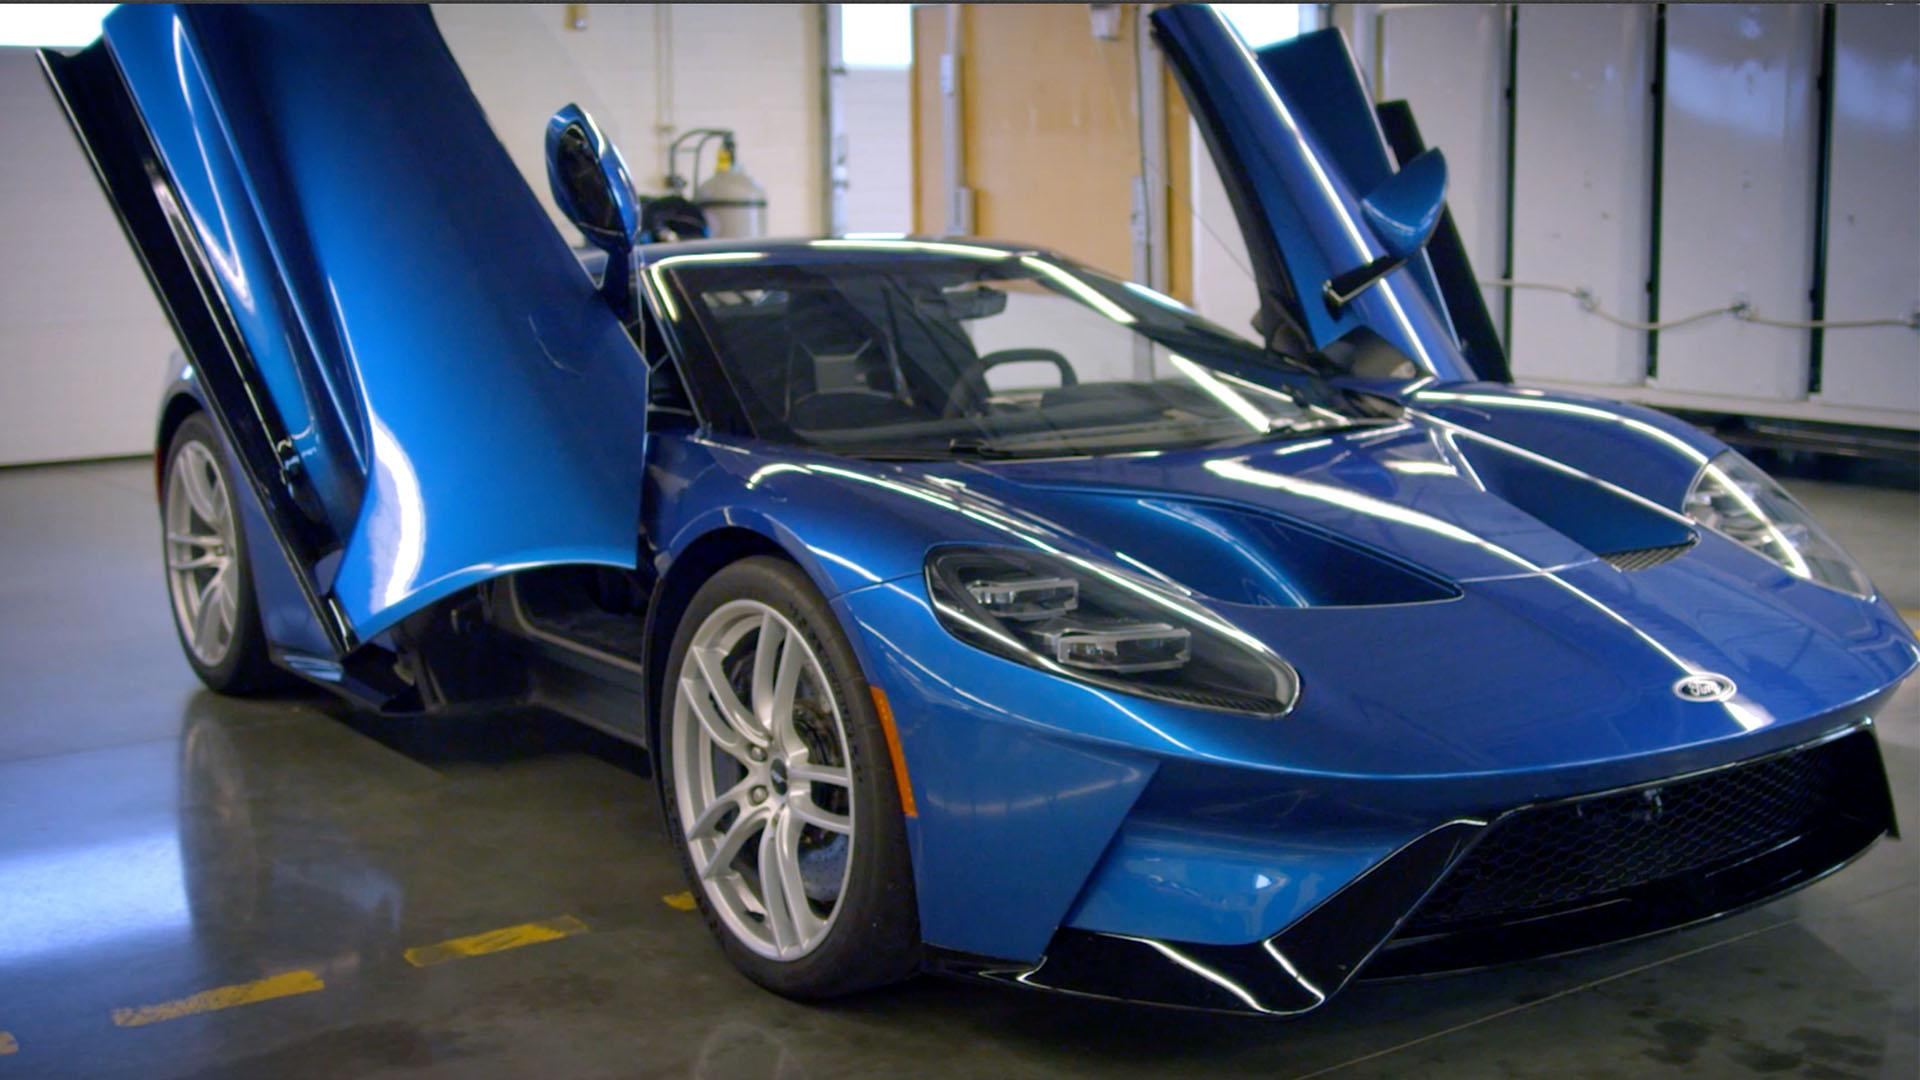 Driving Ford's GT supercar